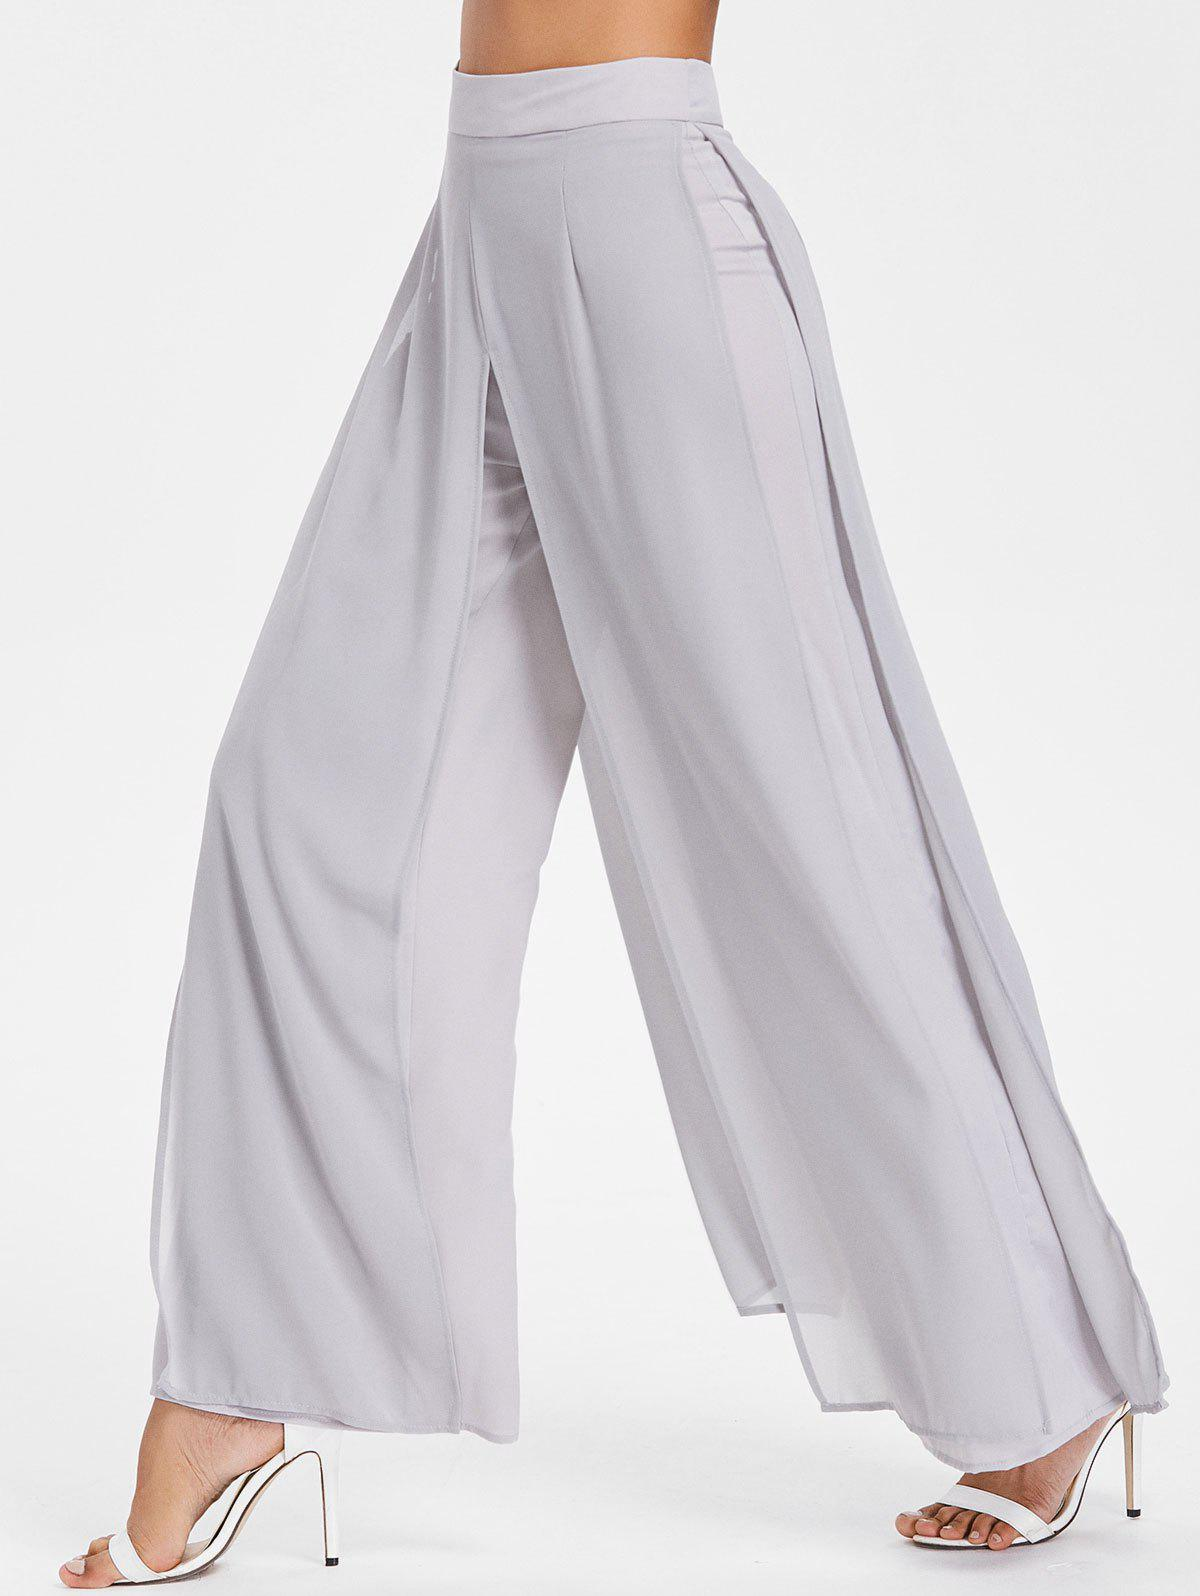 ace7ed2584b 53% OFF   2019 Chiffon Overlay Wide Leg Trousers